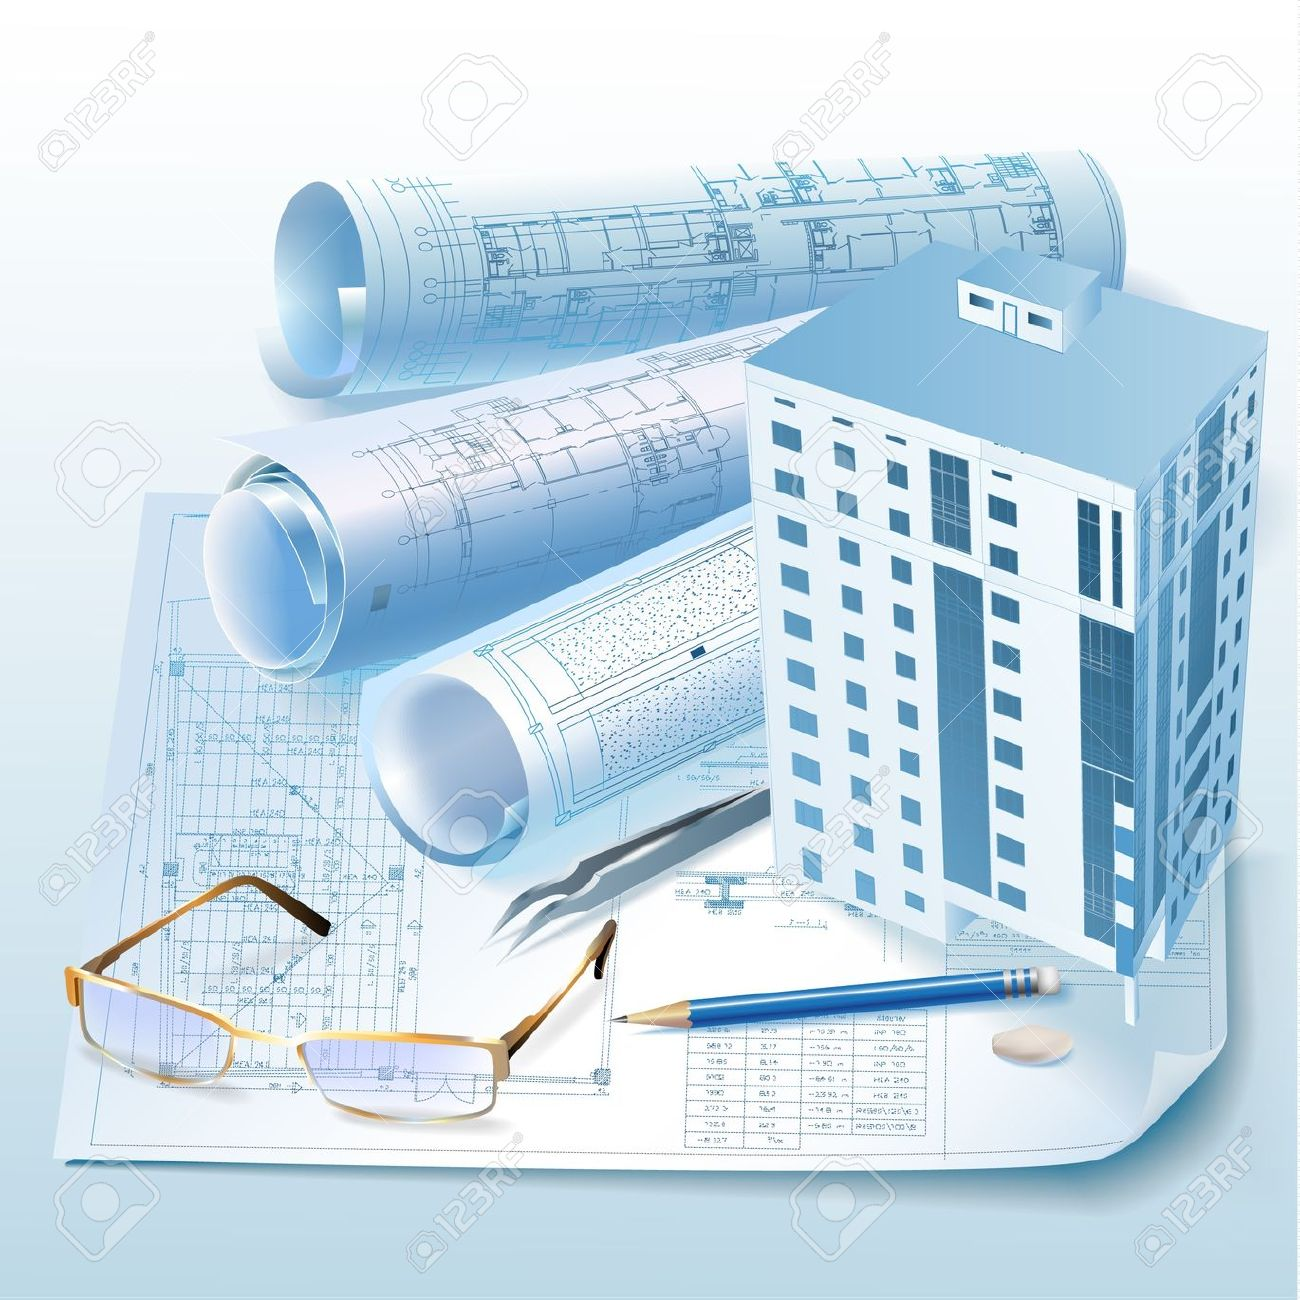 Architectural Background With A 3D Building Model Clip.